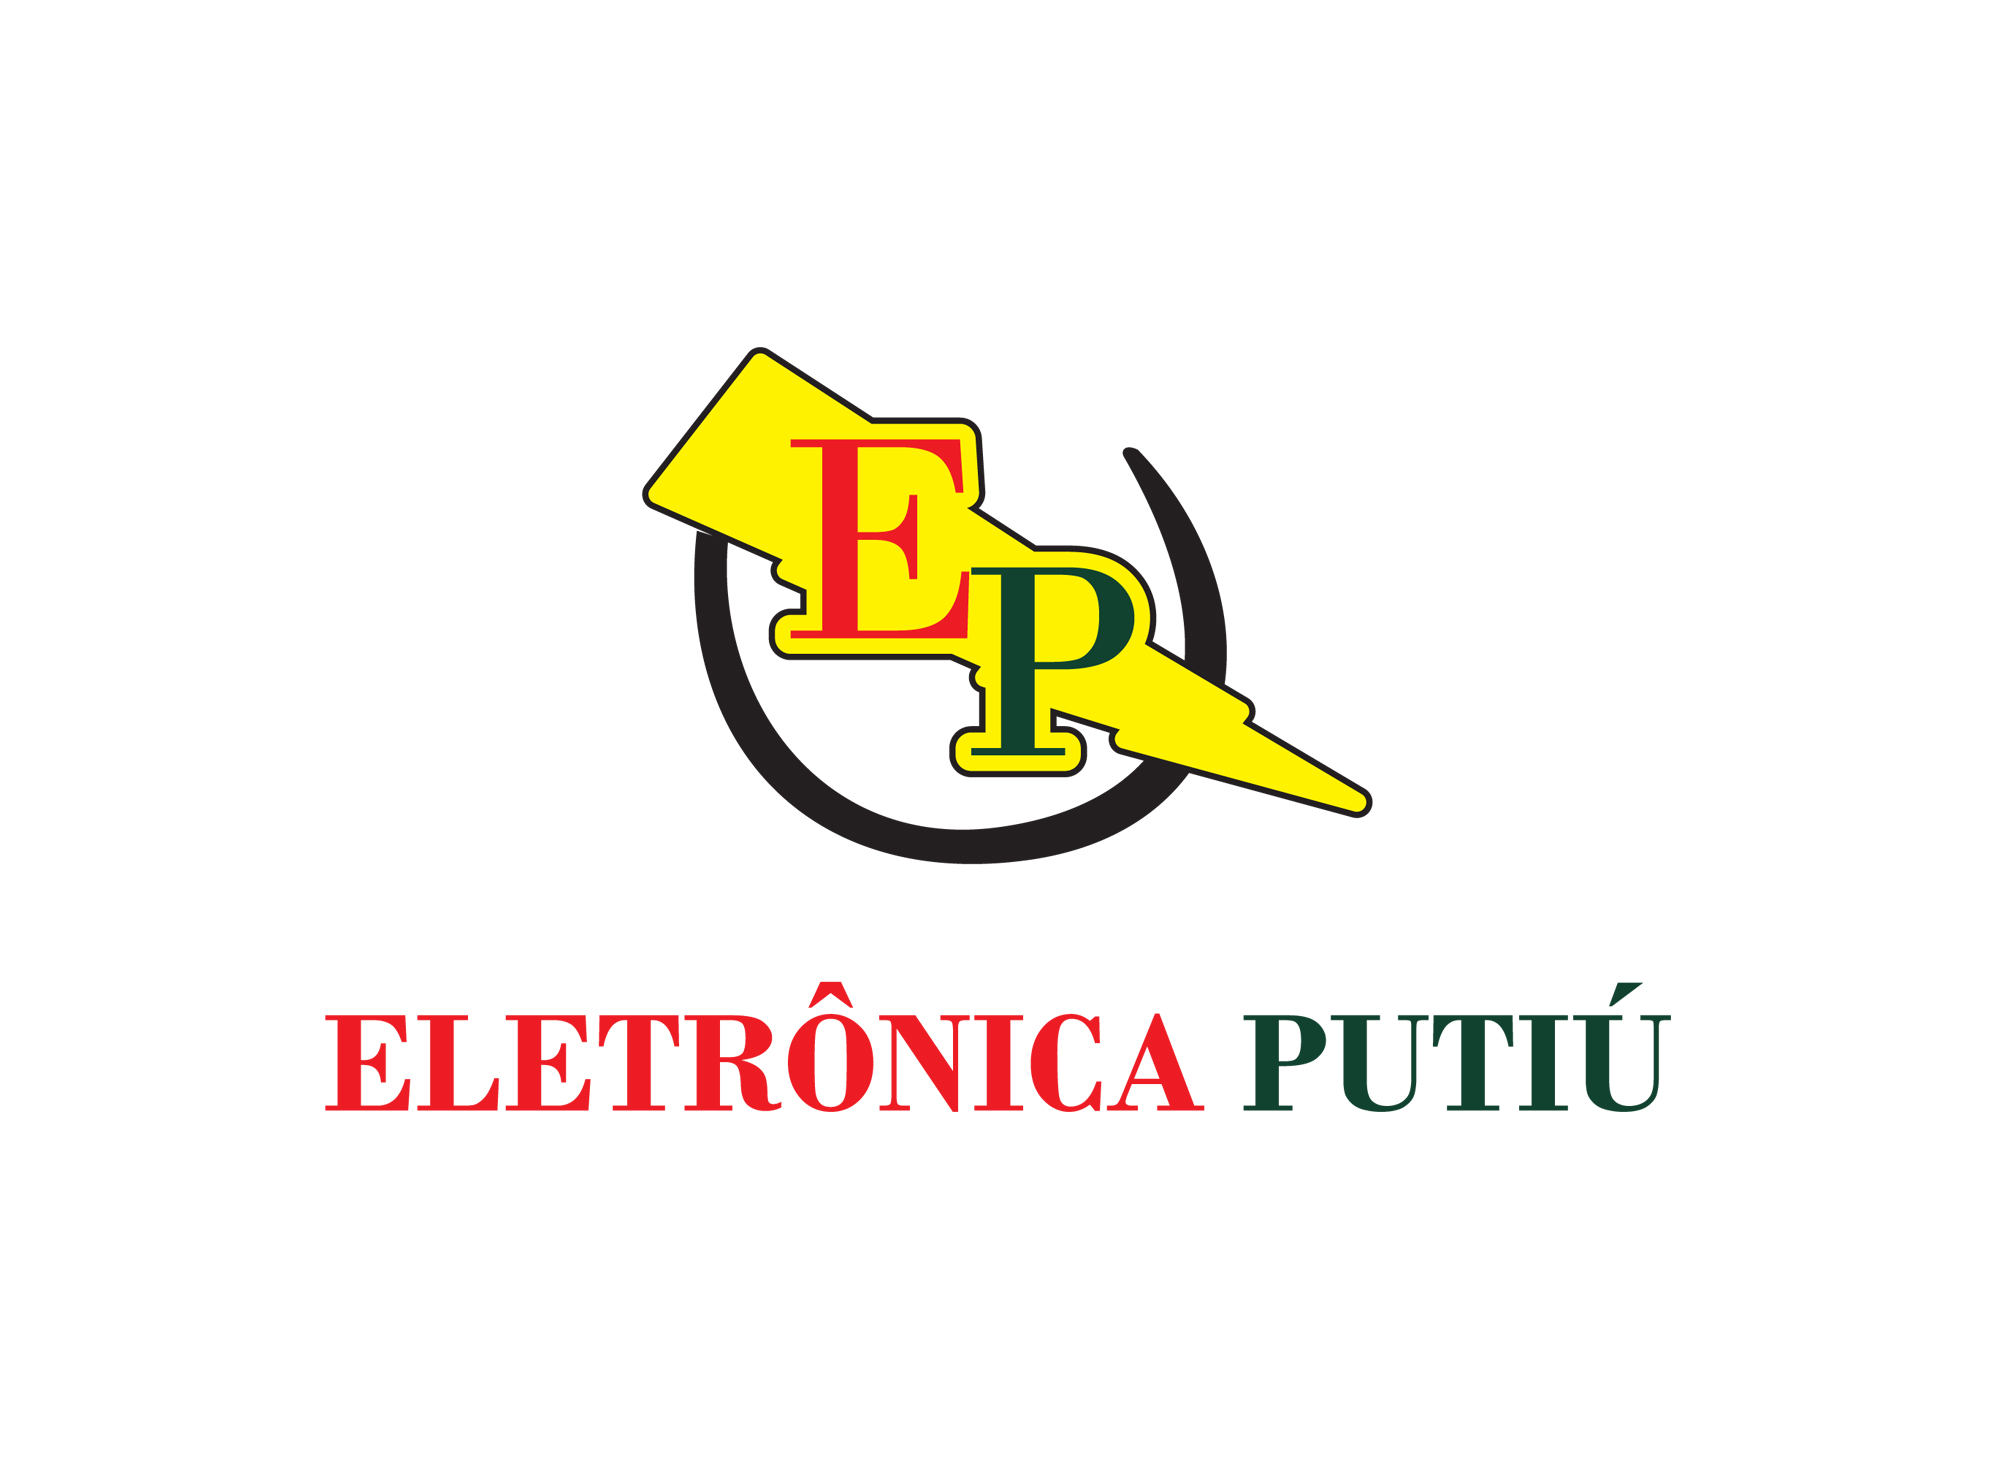 eletronica-putiu-cliente-agencia-diretriz-digital-marketing-fortaleza